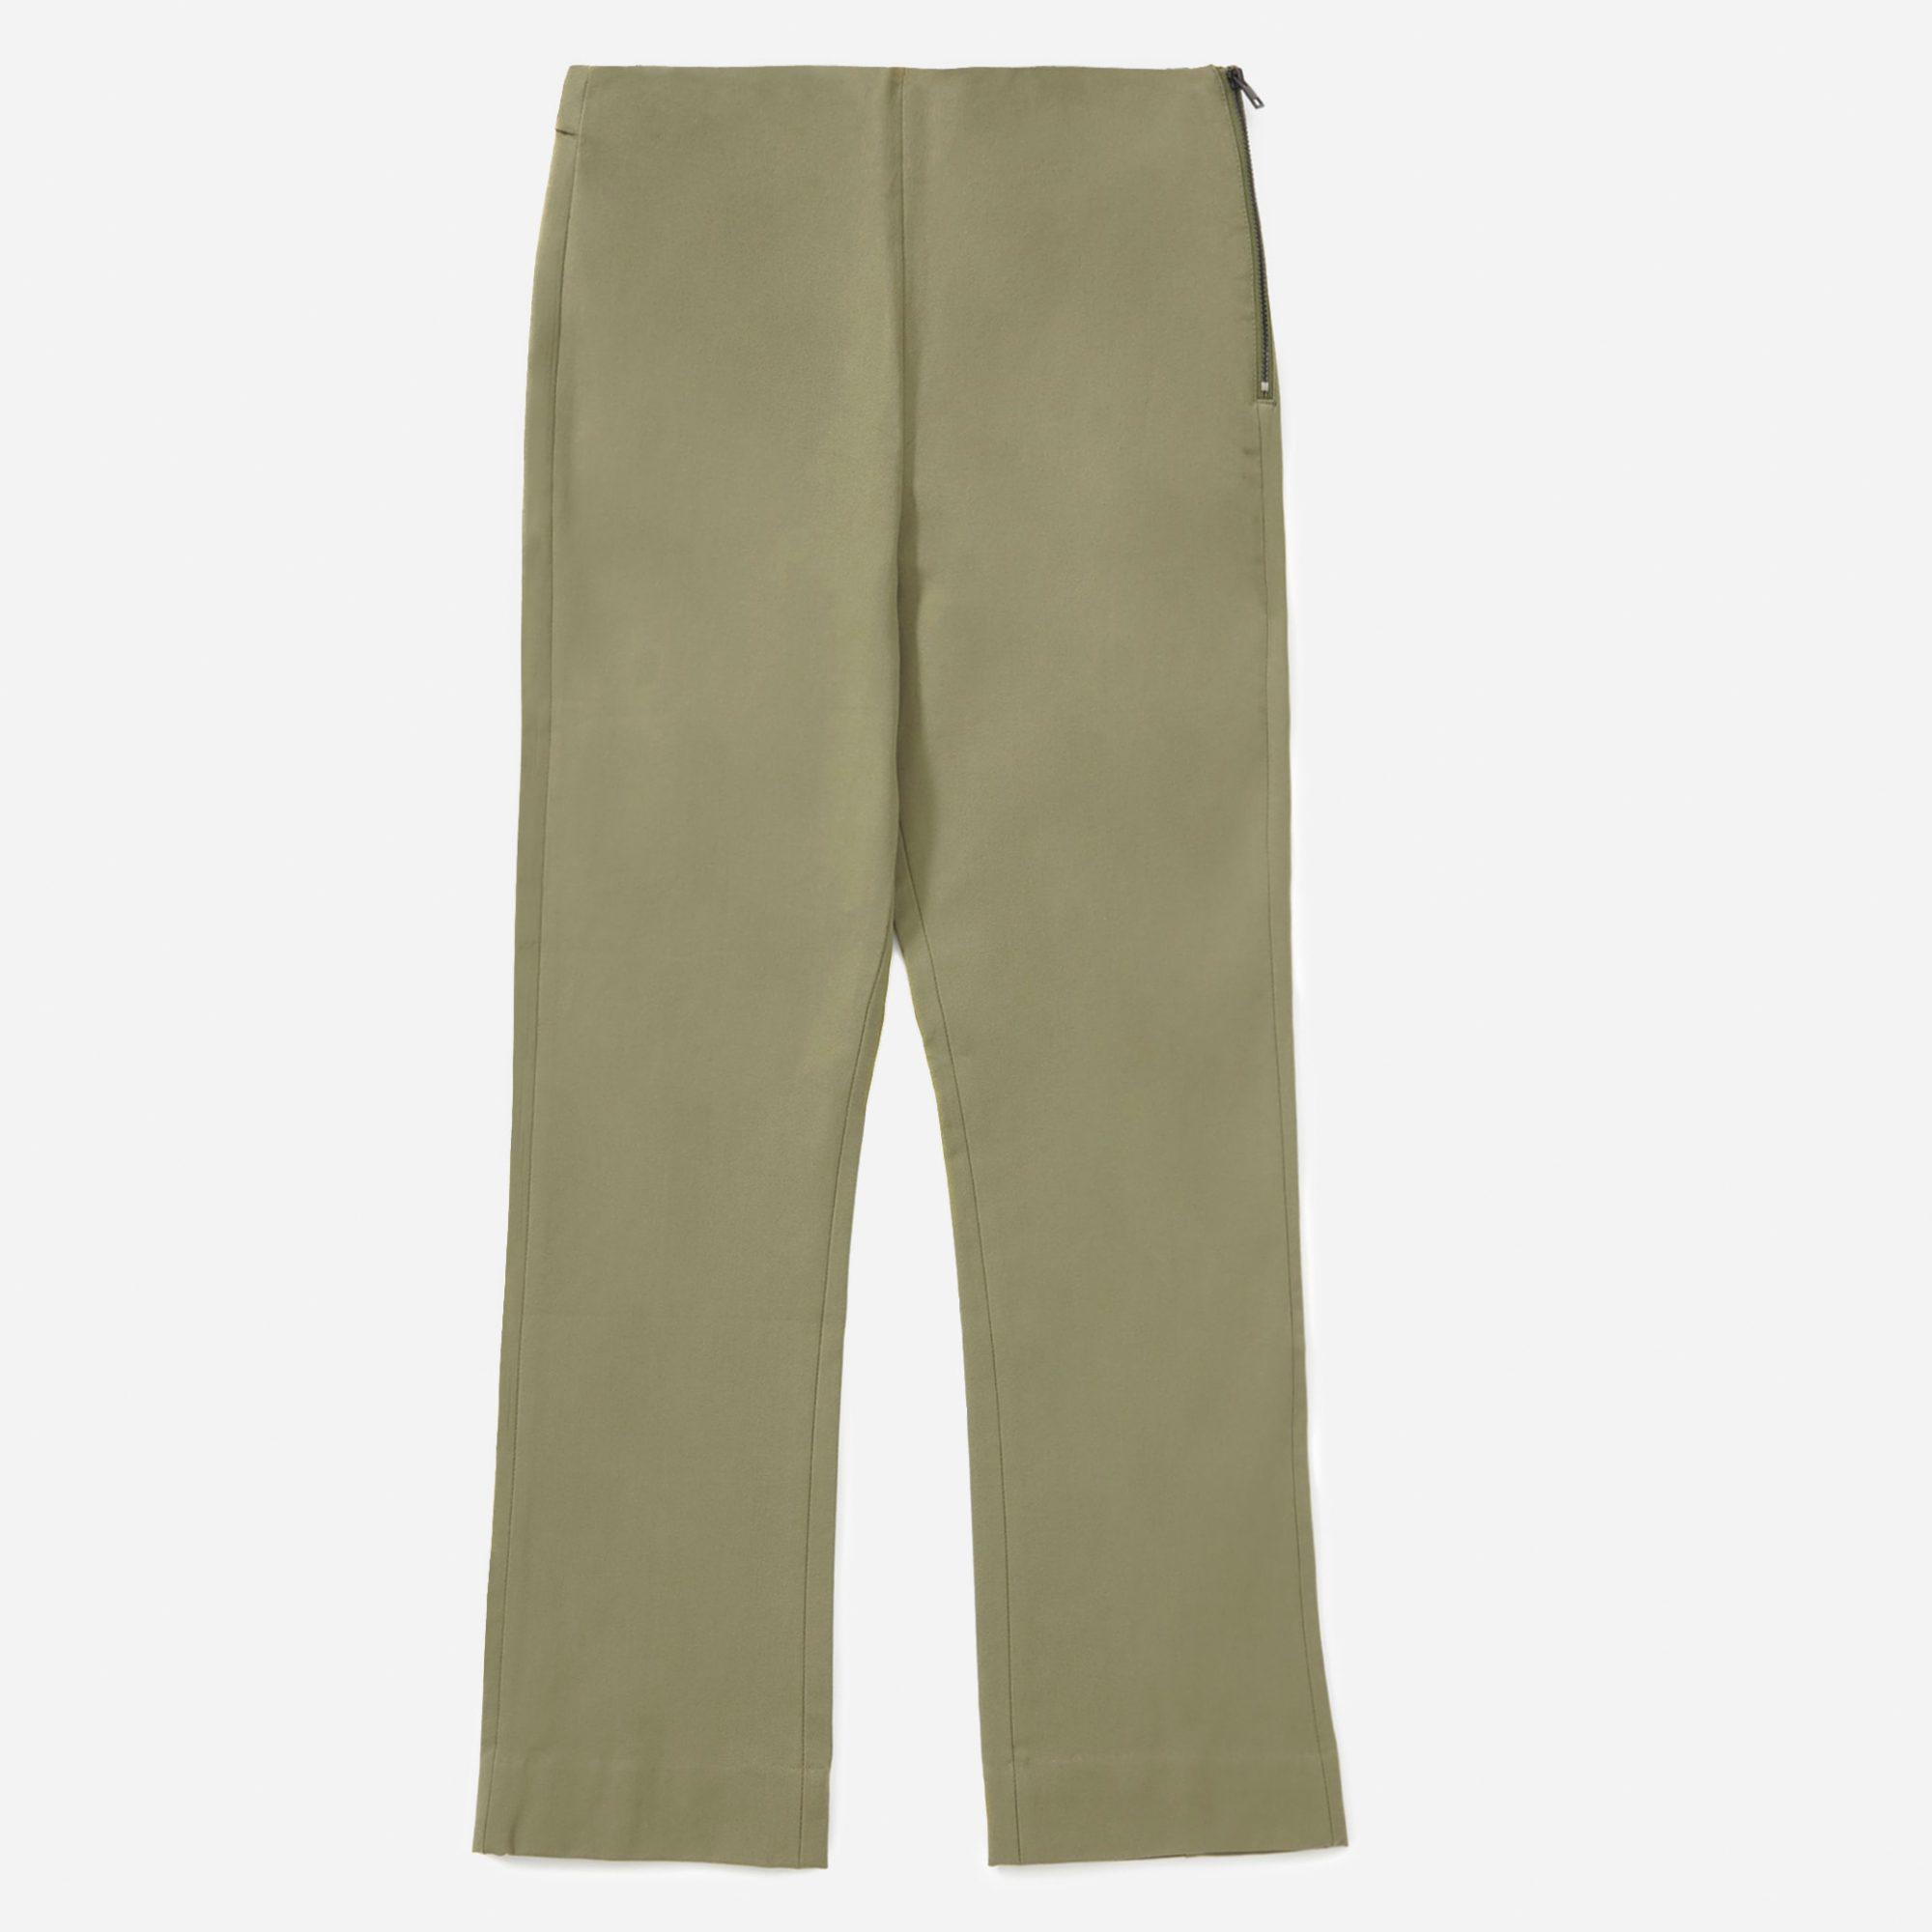 Everlane Kick Crop Work Pant